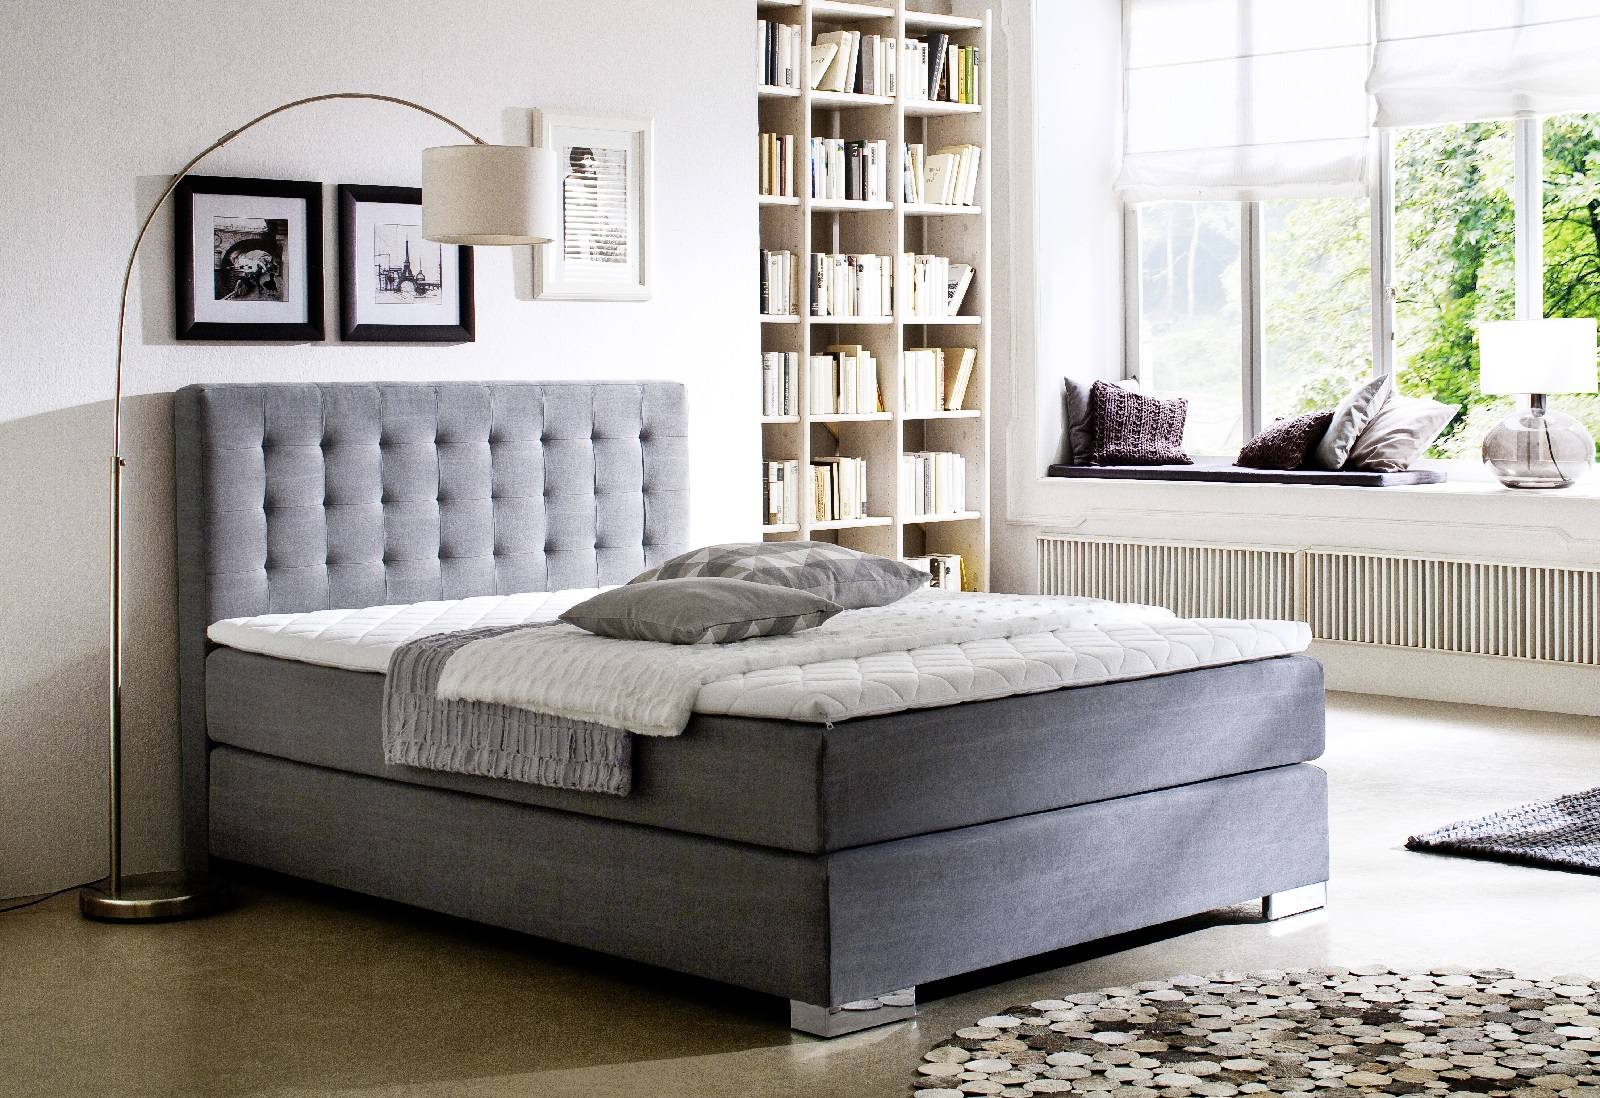 boxspringbett jordan graphit 120cm x 200cm. Black Bedroom Furniture Sets. Home Design Ideas